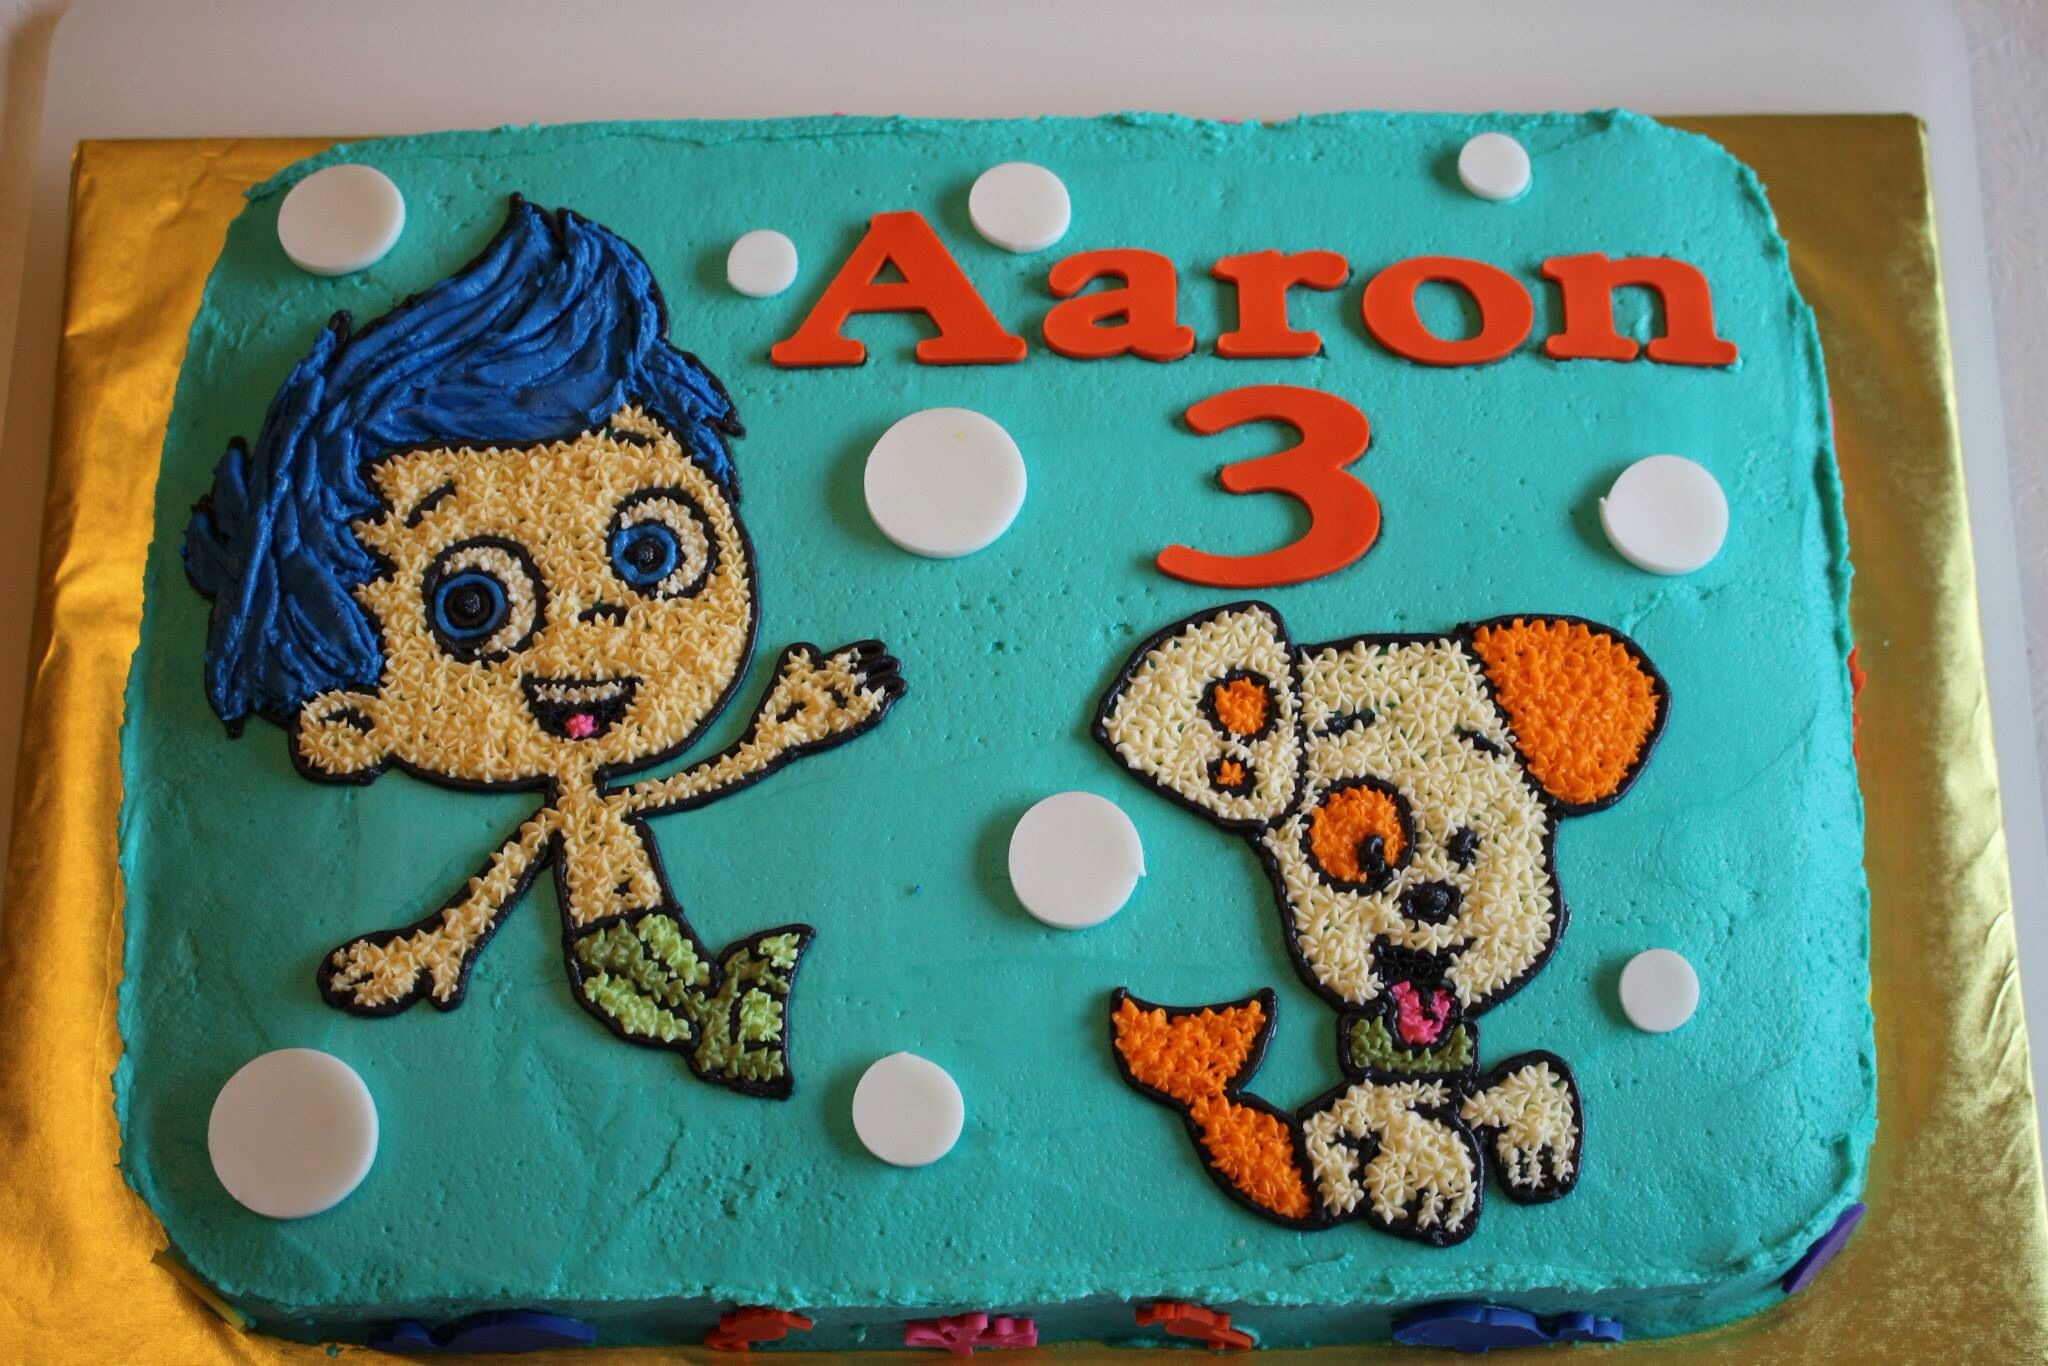 Aaron S Third Birthday Cake He Wanted Gill And Bubble